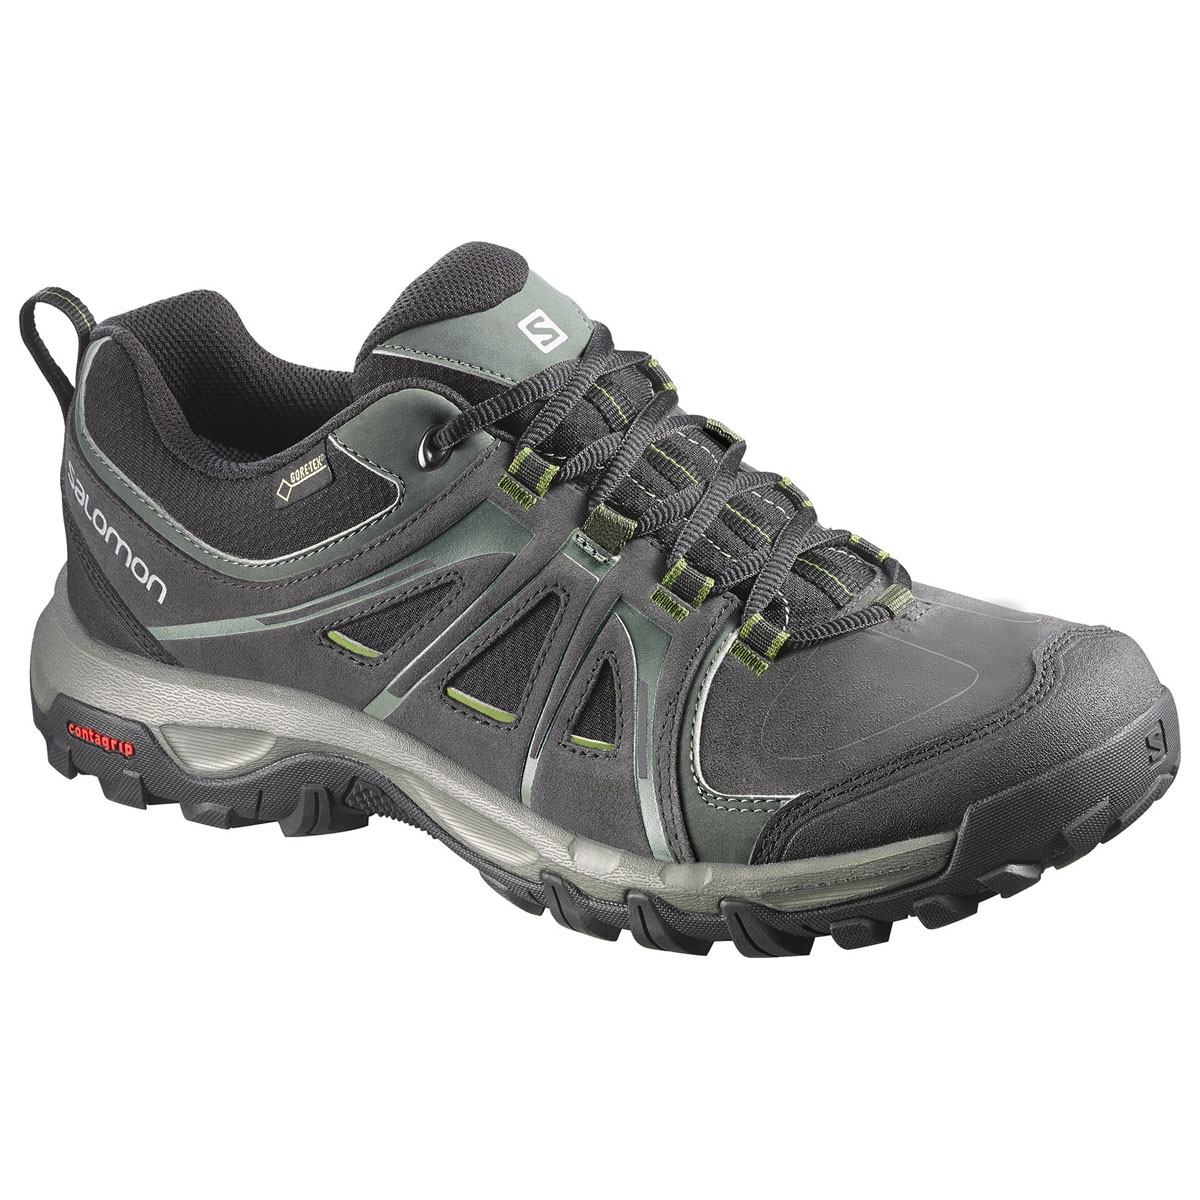 24c2b95c6708 Image of Salomon Evasion GTX Walking Shoes (Men s) - Asphalt   Black    Genepi